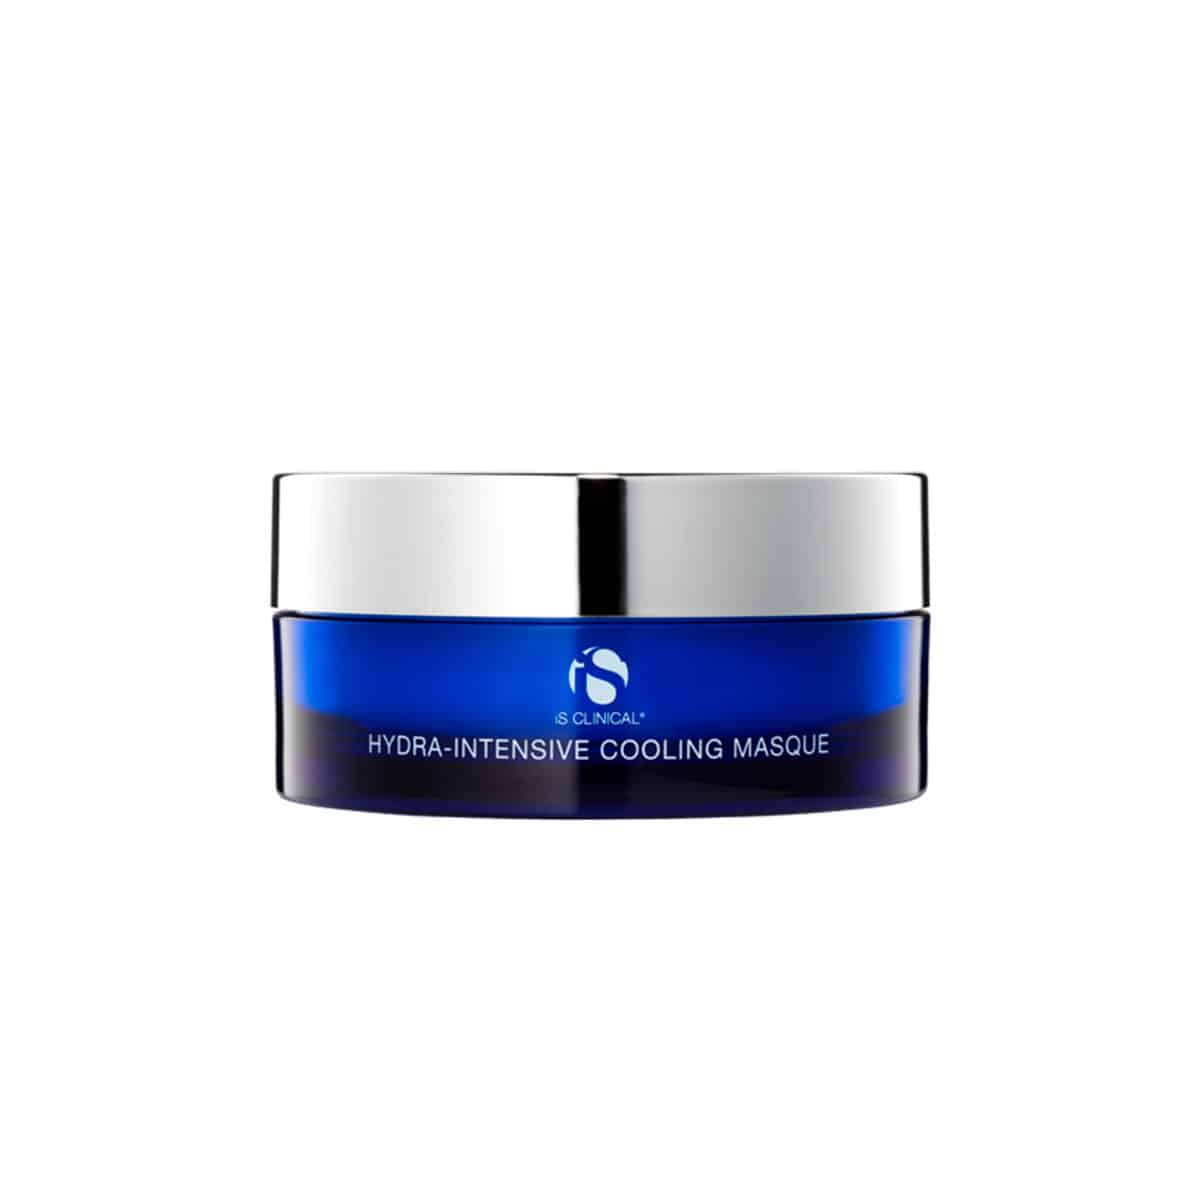 IS CLINICAL Hydra Intensive Cooling Masque 120ml